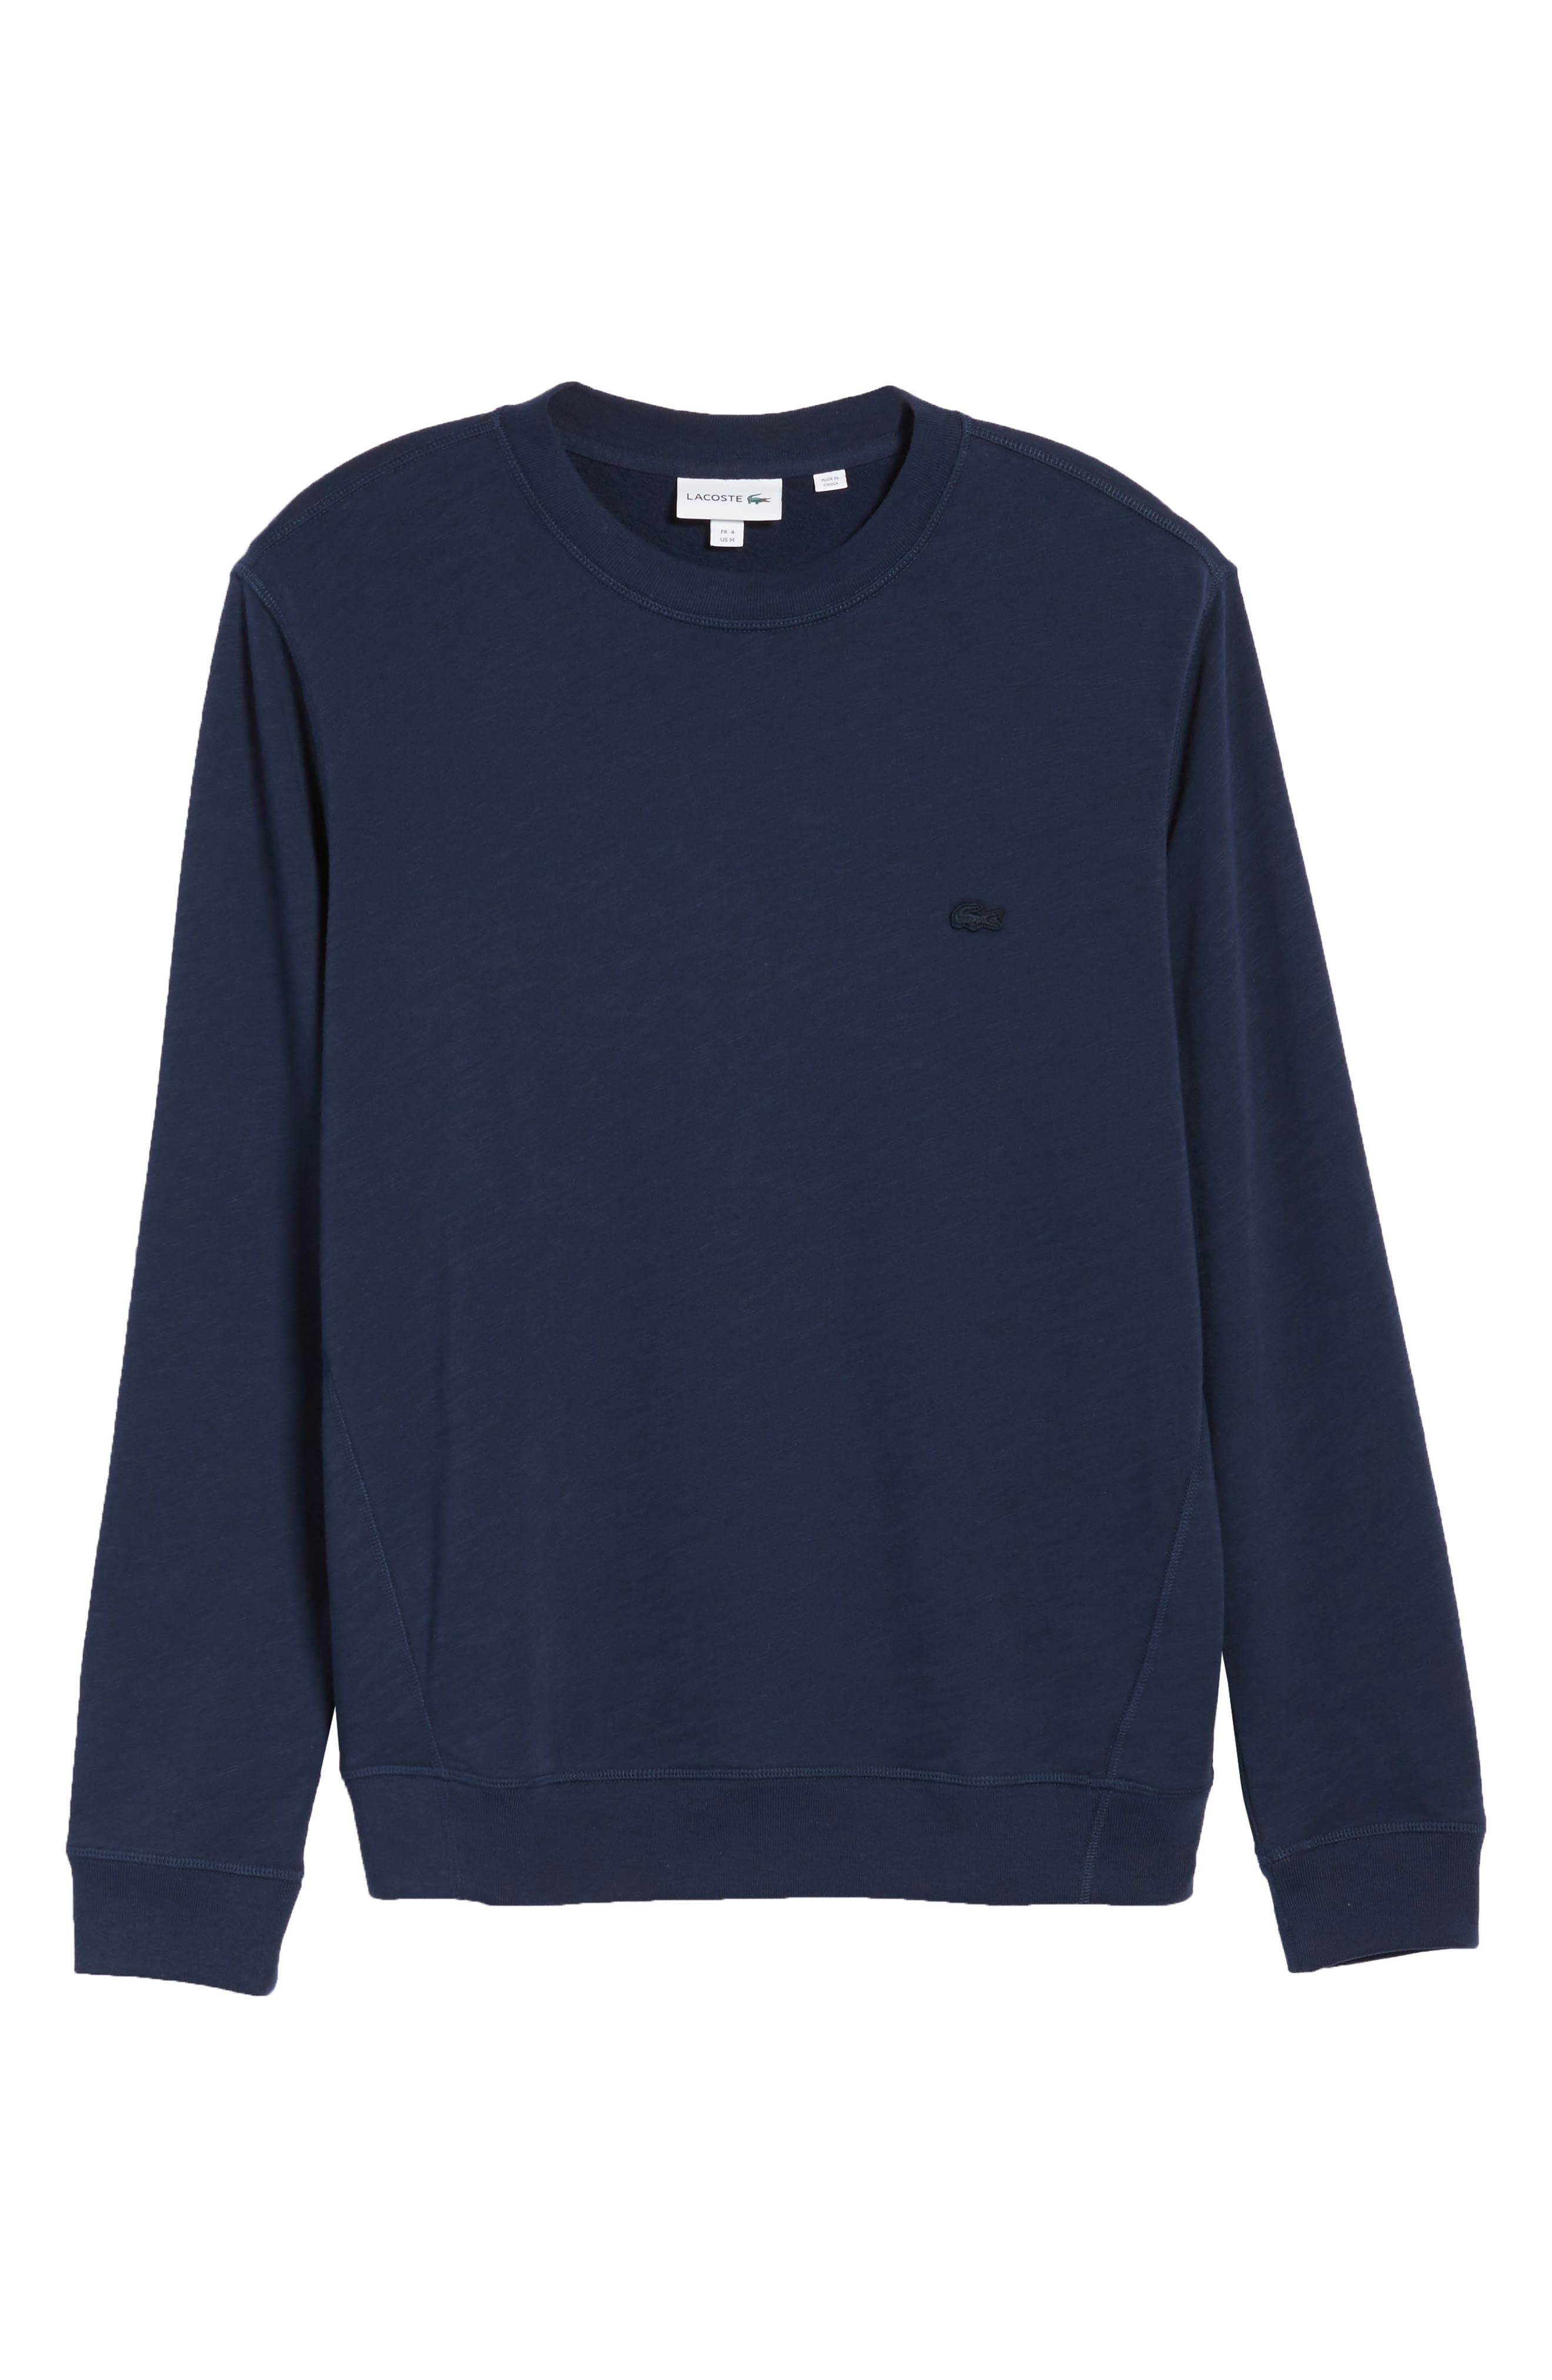 Slim Fit French Terry Sweatshirt,                             Alternate thumbnail 6, color,                             Navy Blue